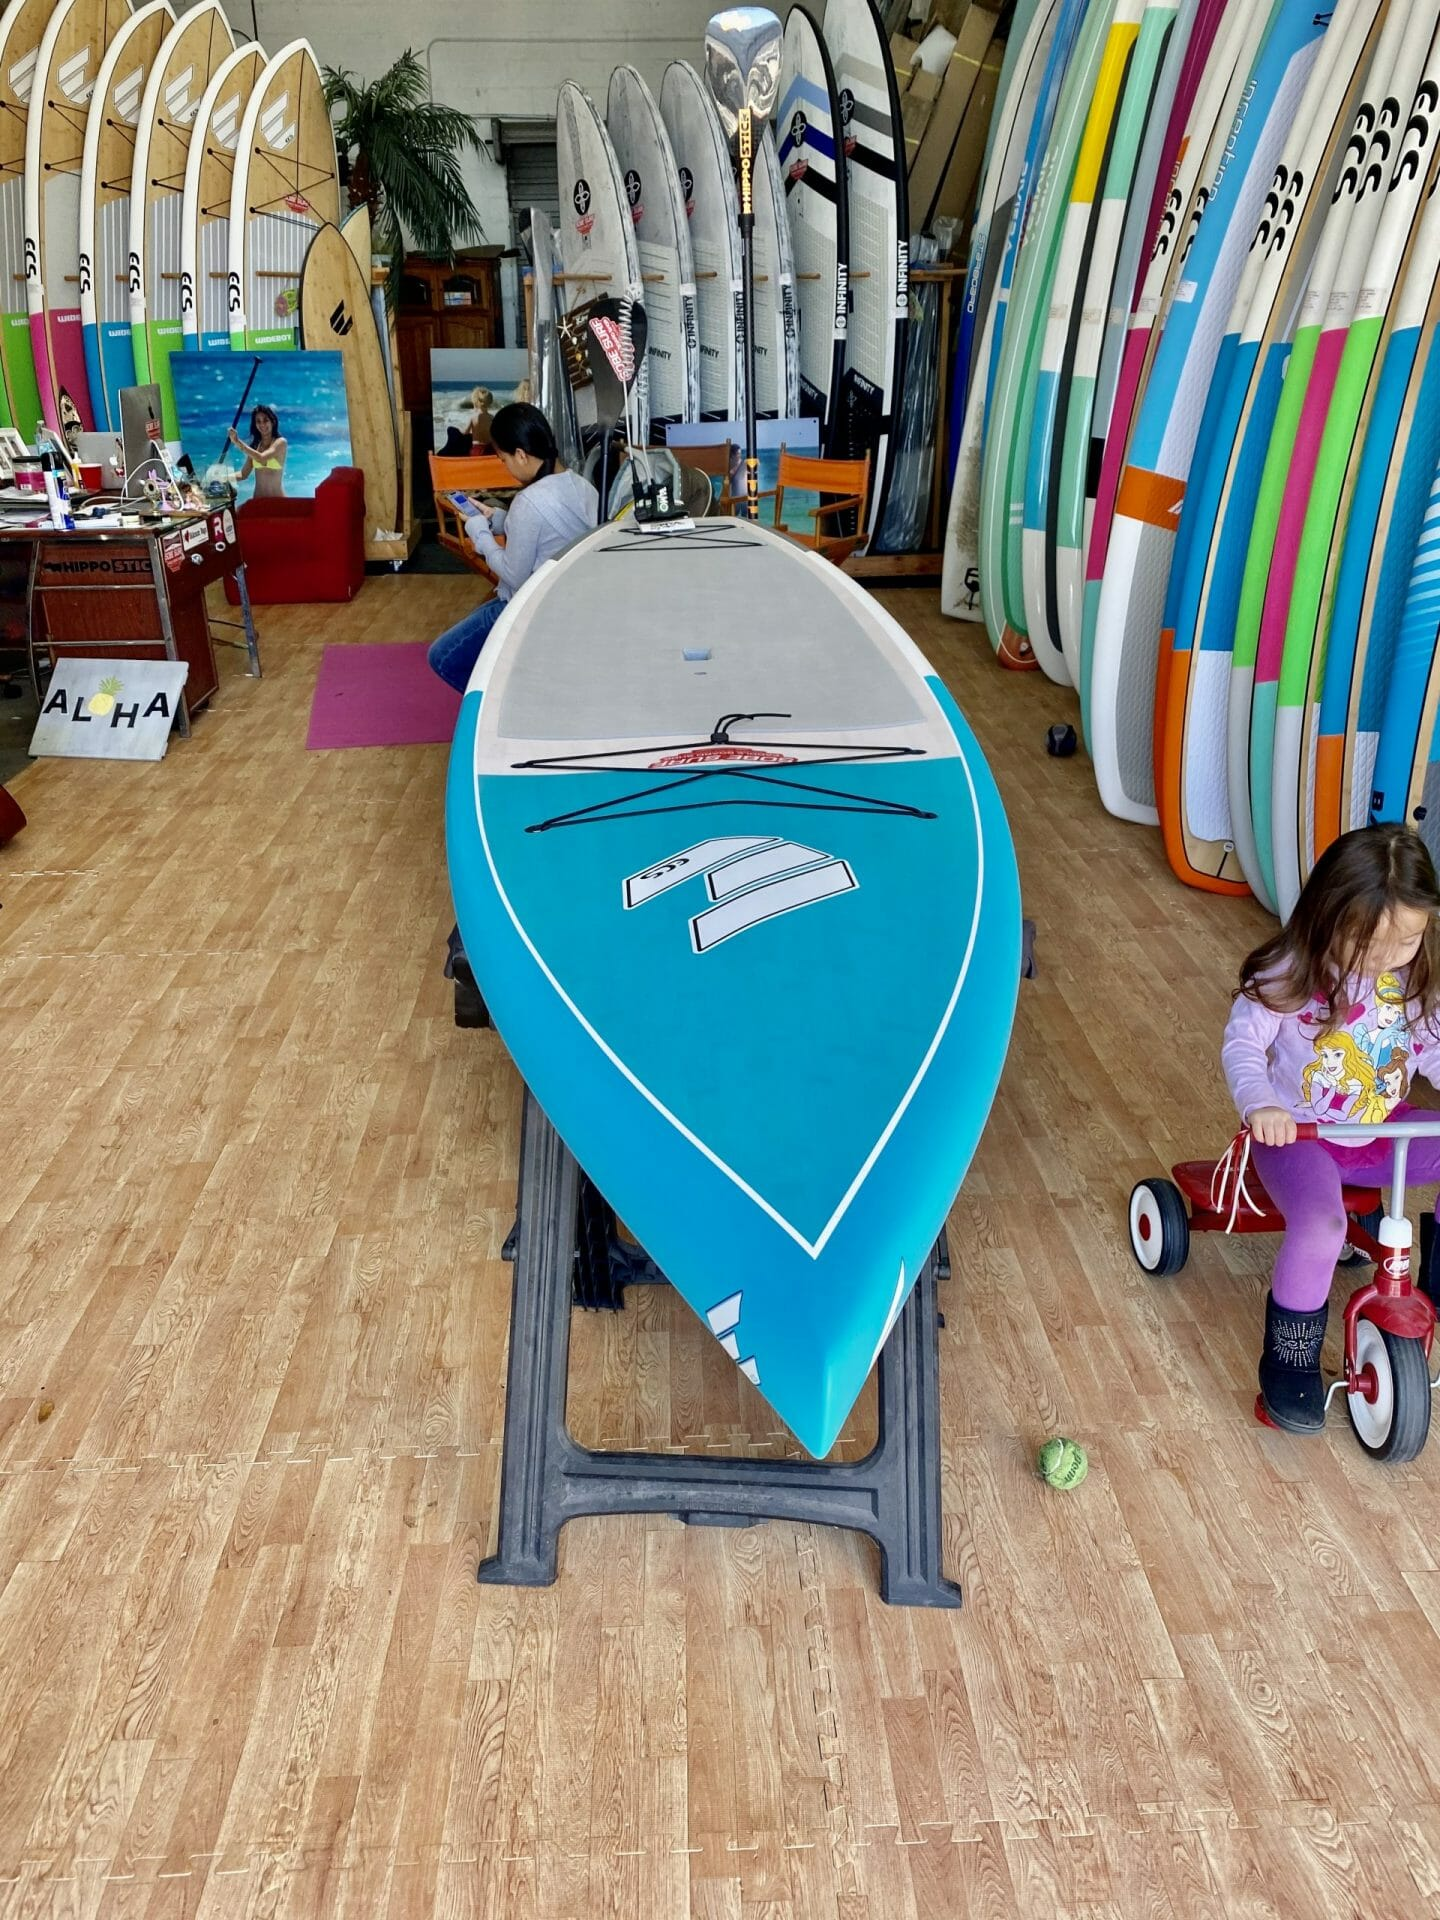 SoBe Surf Paddle Board Shop Florida Cocoa Beach Merritt Island Miami Owner Girard Middleton's daughter Audrey